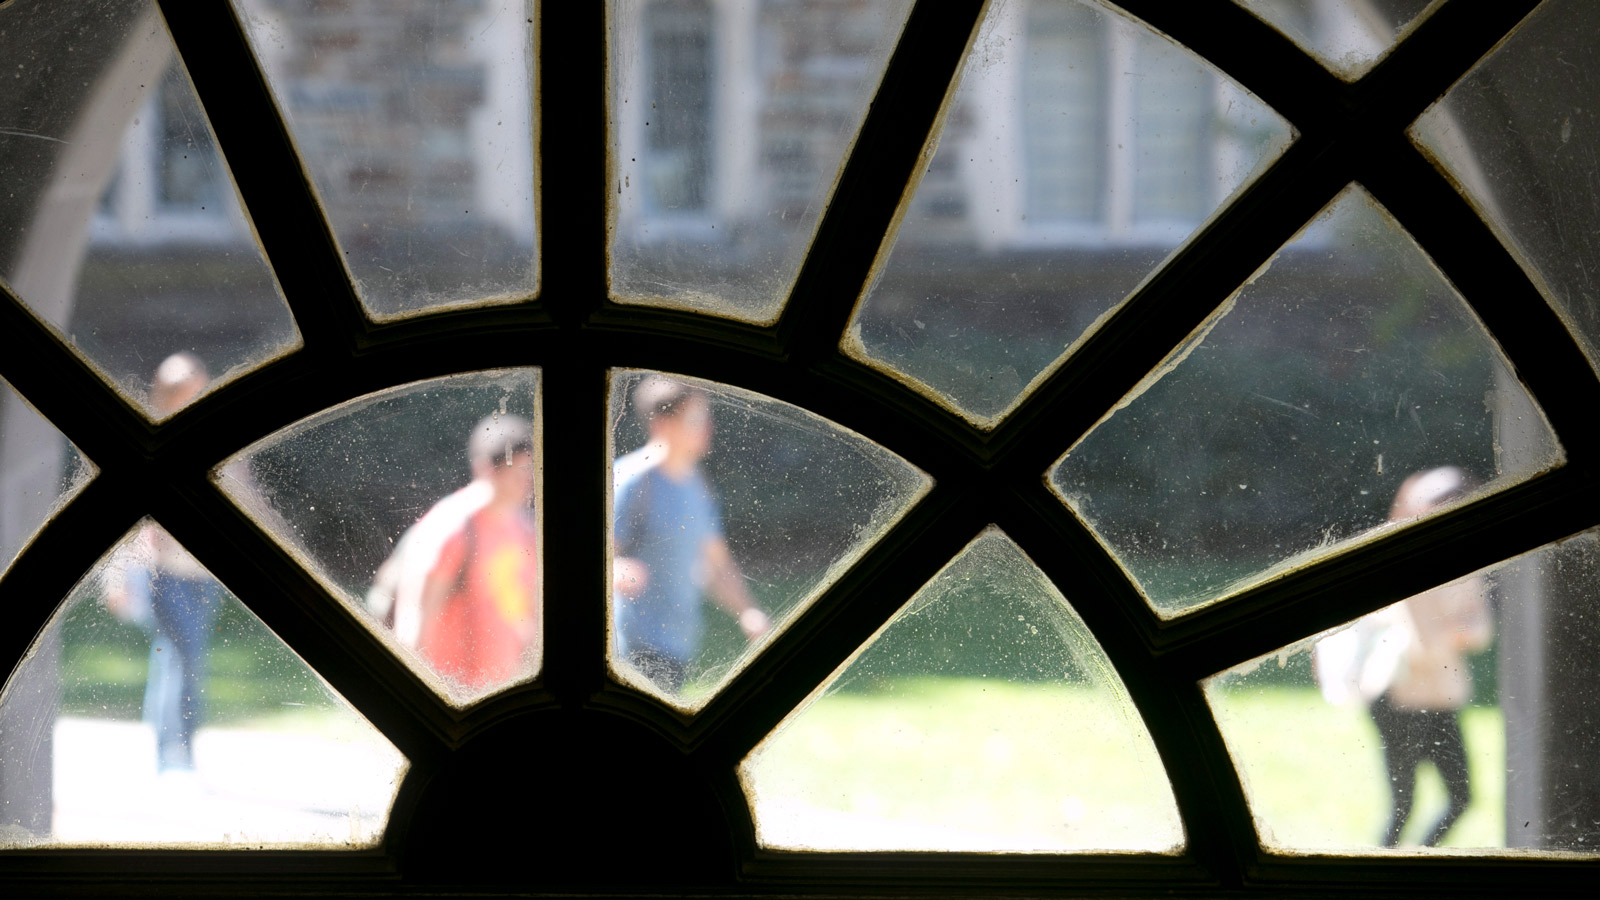 Antique window with out-of-focus students walking outside